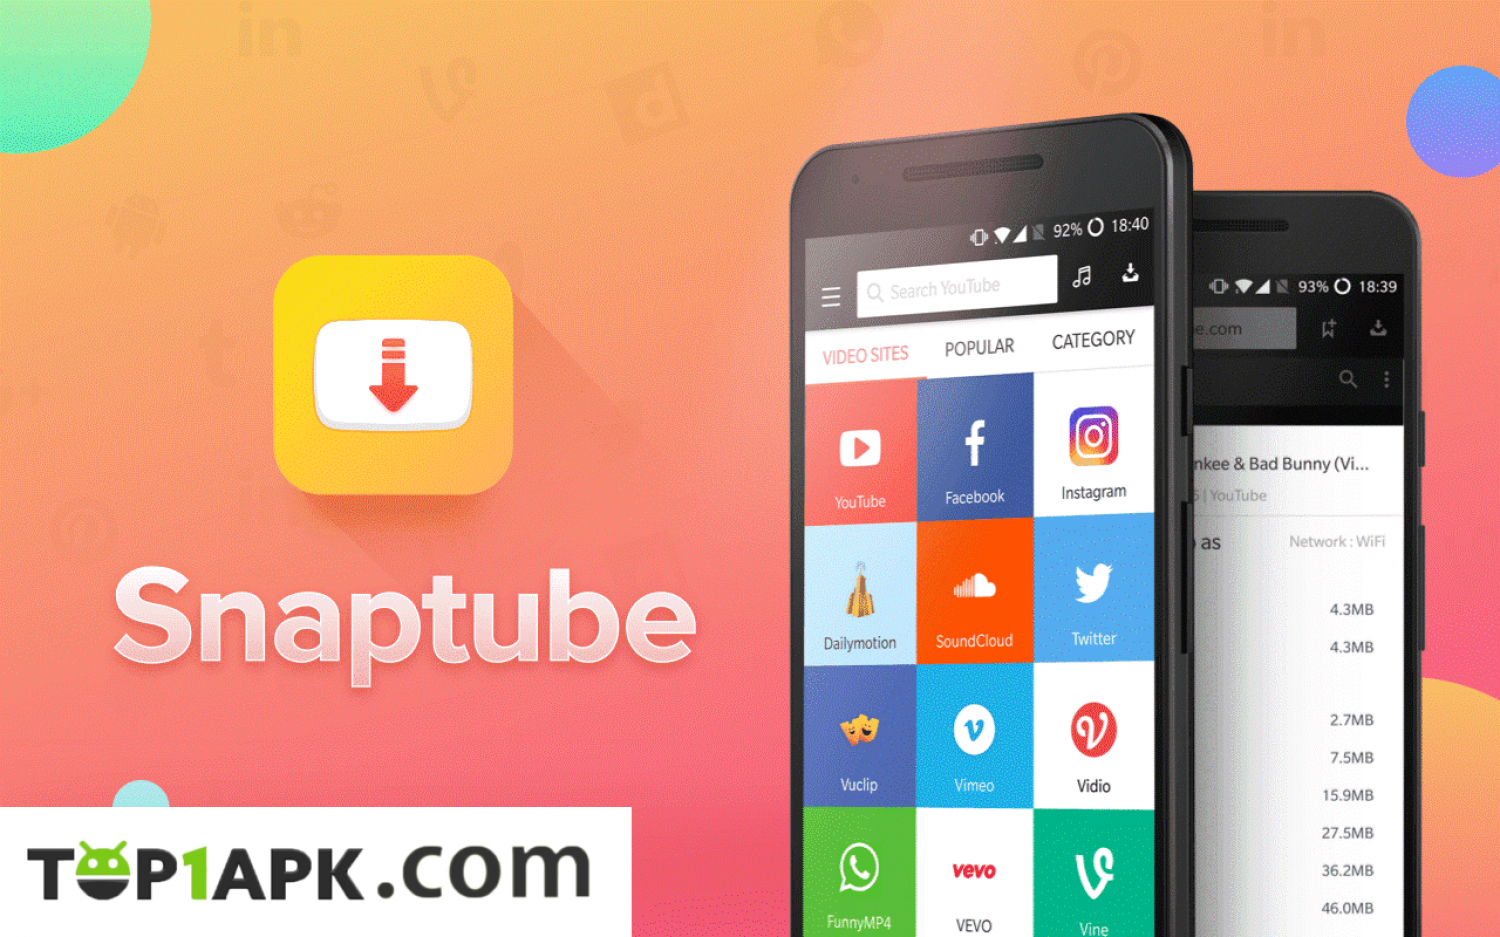 SnapTube APK - Download on Top1apk Infographic